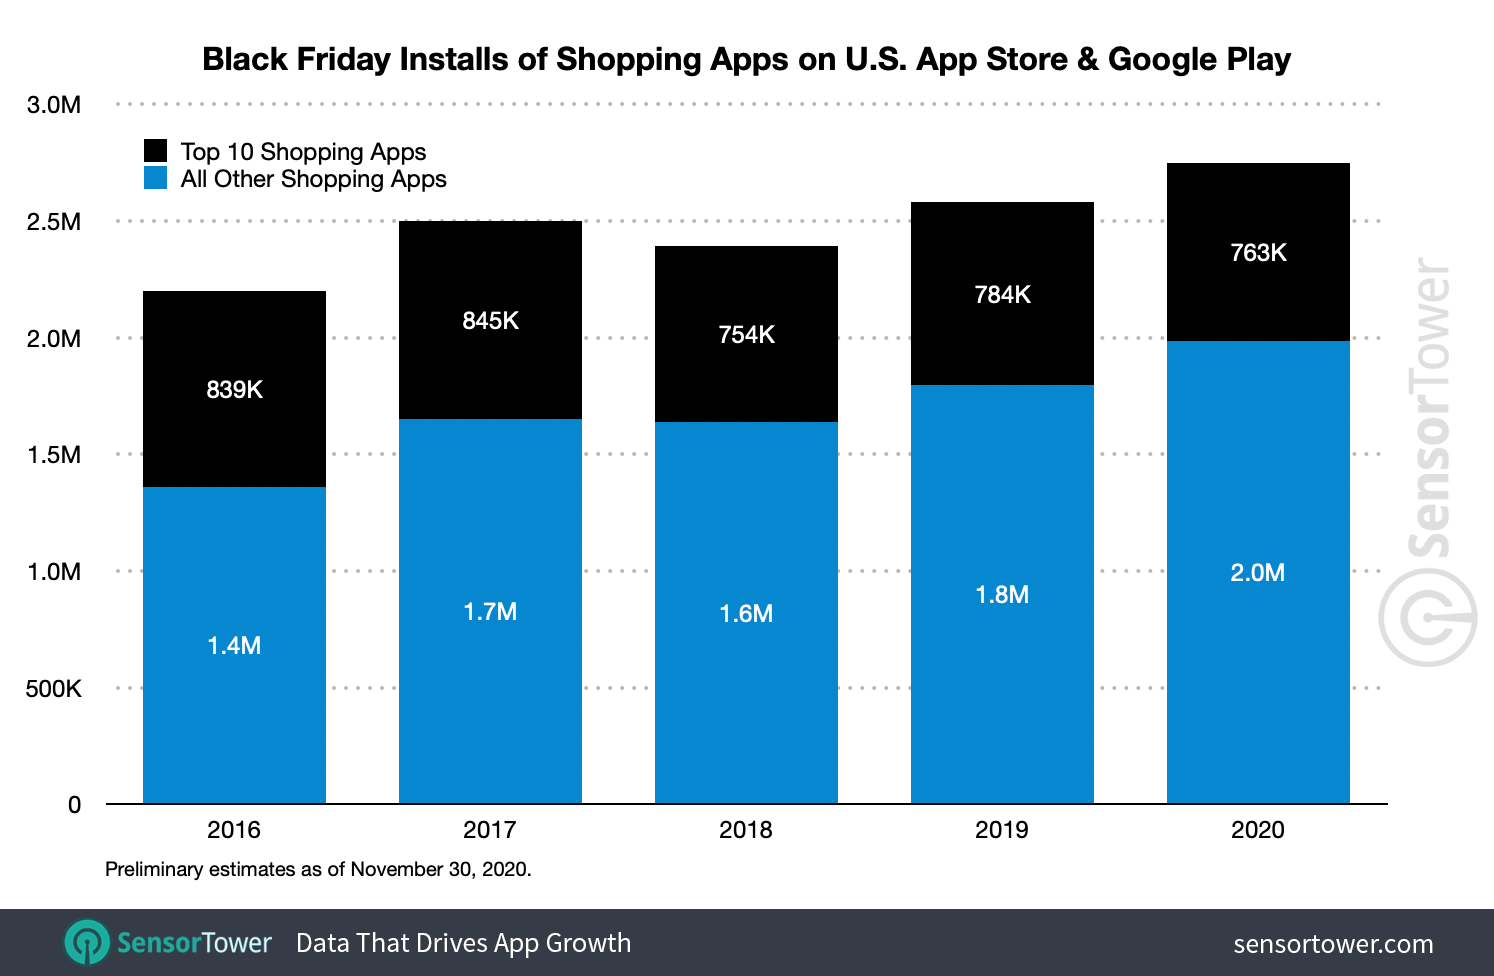 Black Friday app downloads grew 8 percent this year to a record 2.8 million installs.